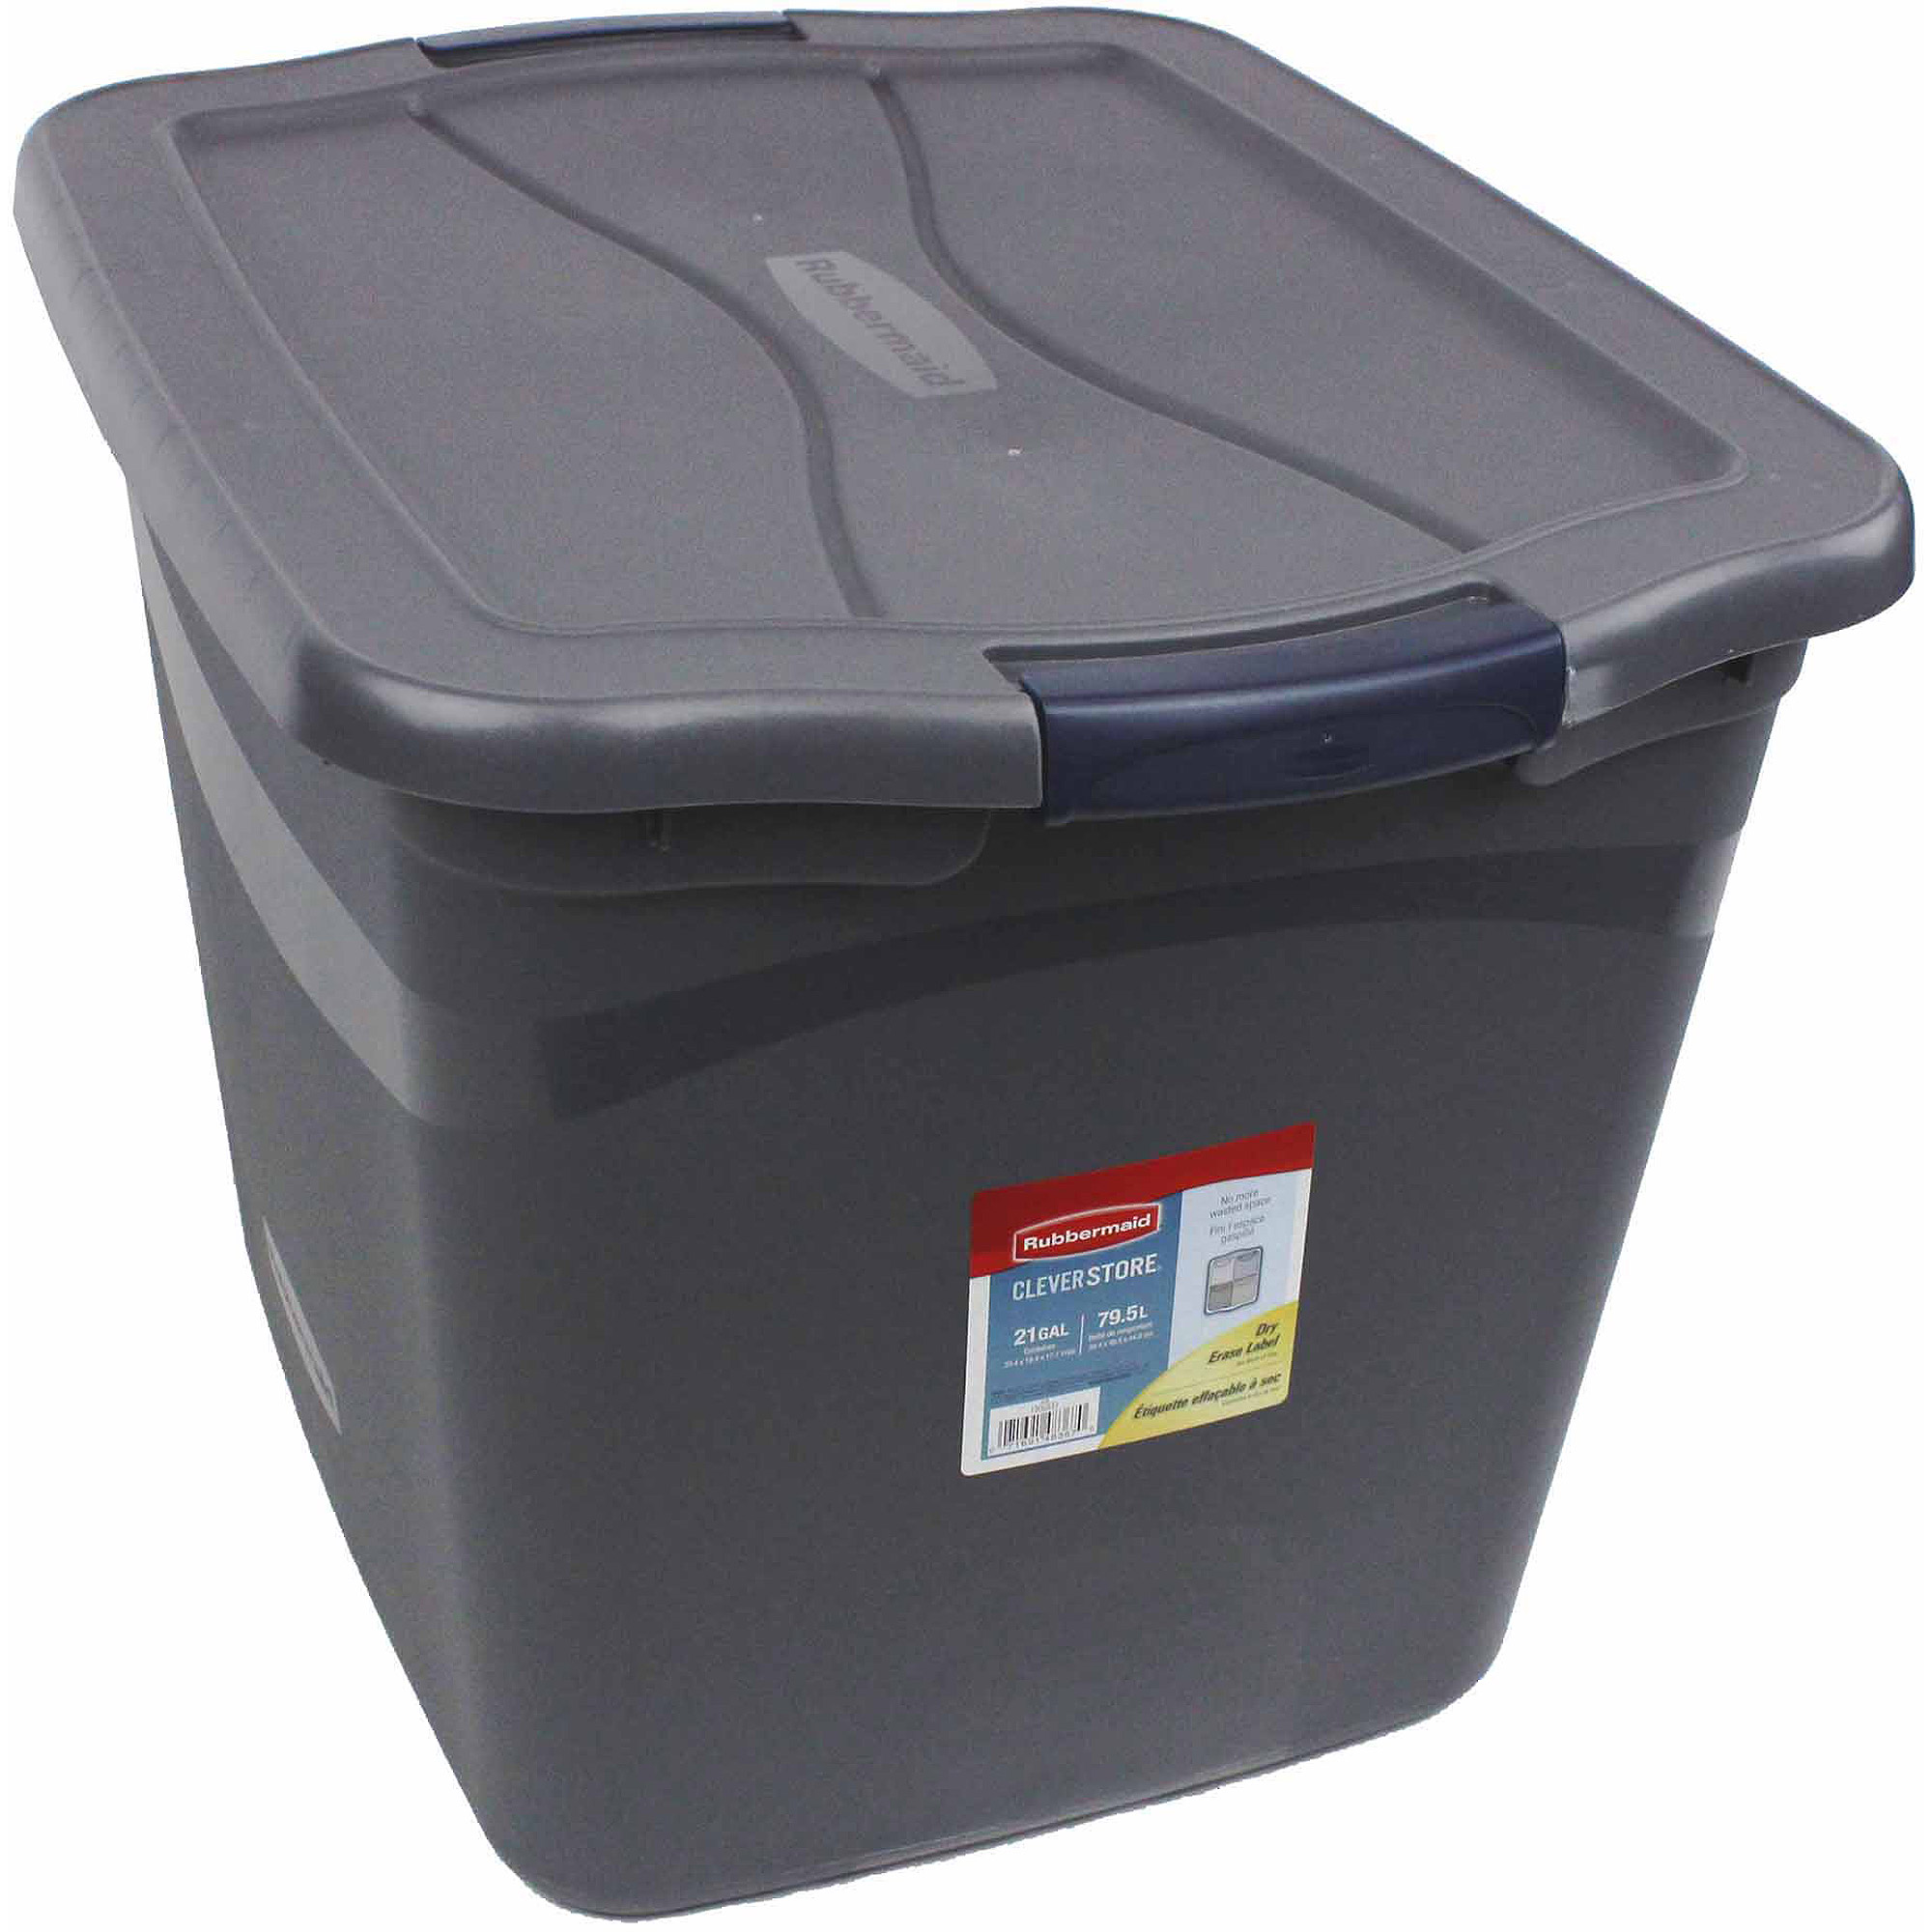 to keep storage and tub a plus totes it kmart food rubbermaid container safe shop online bins at interesting as buy ideas tubs plastic clean